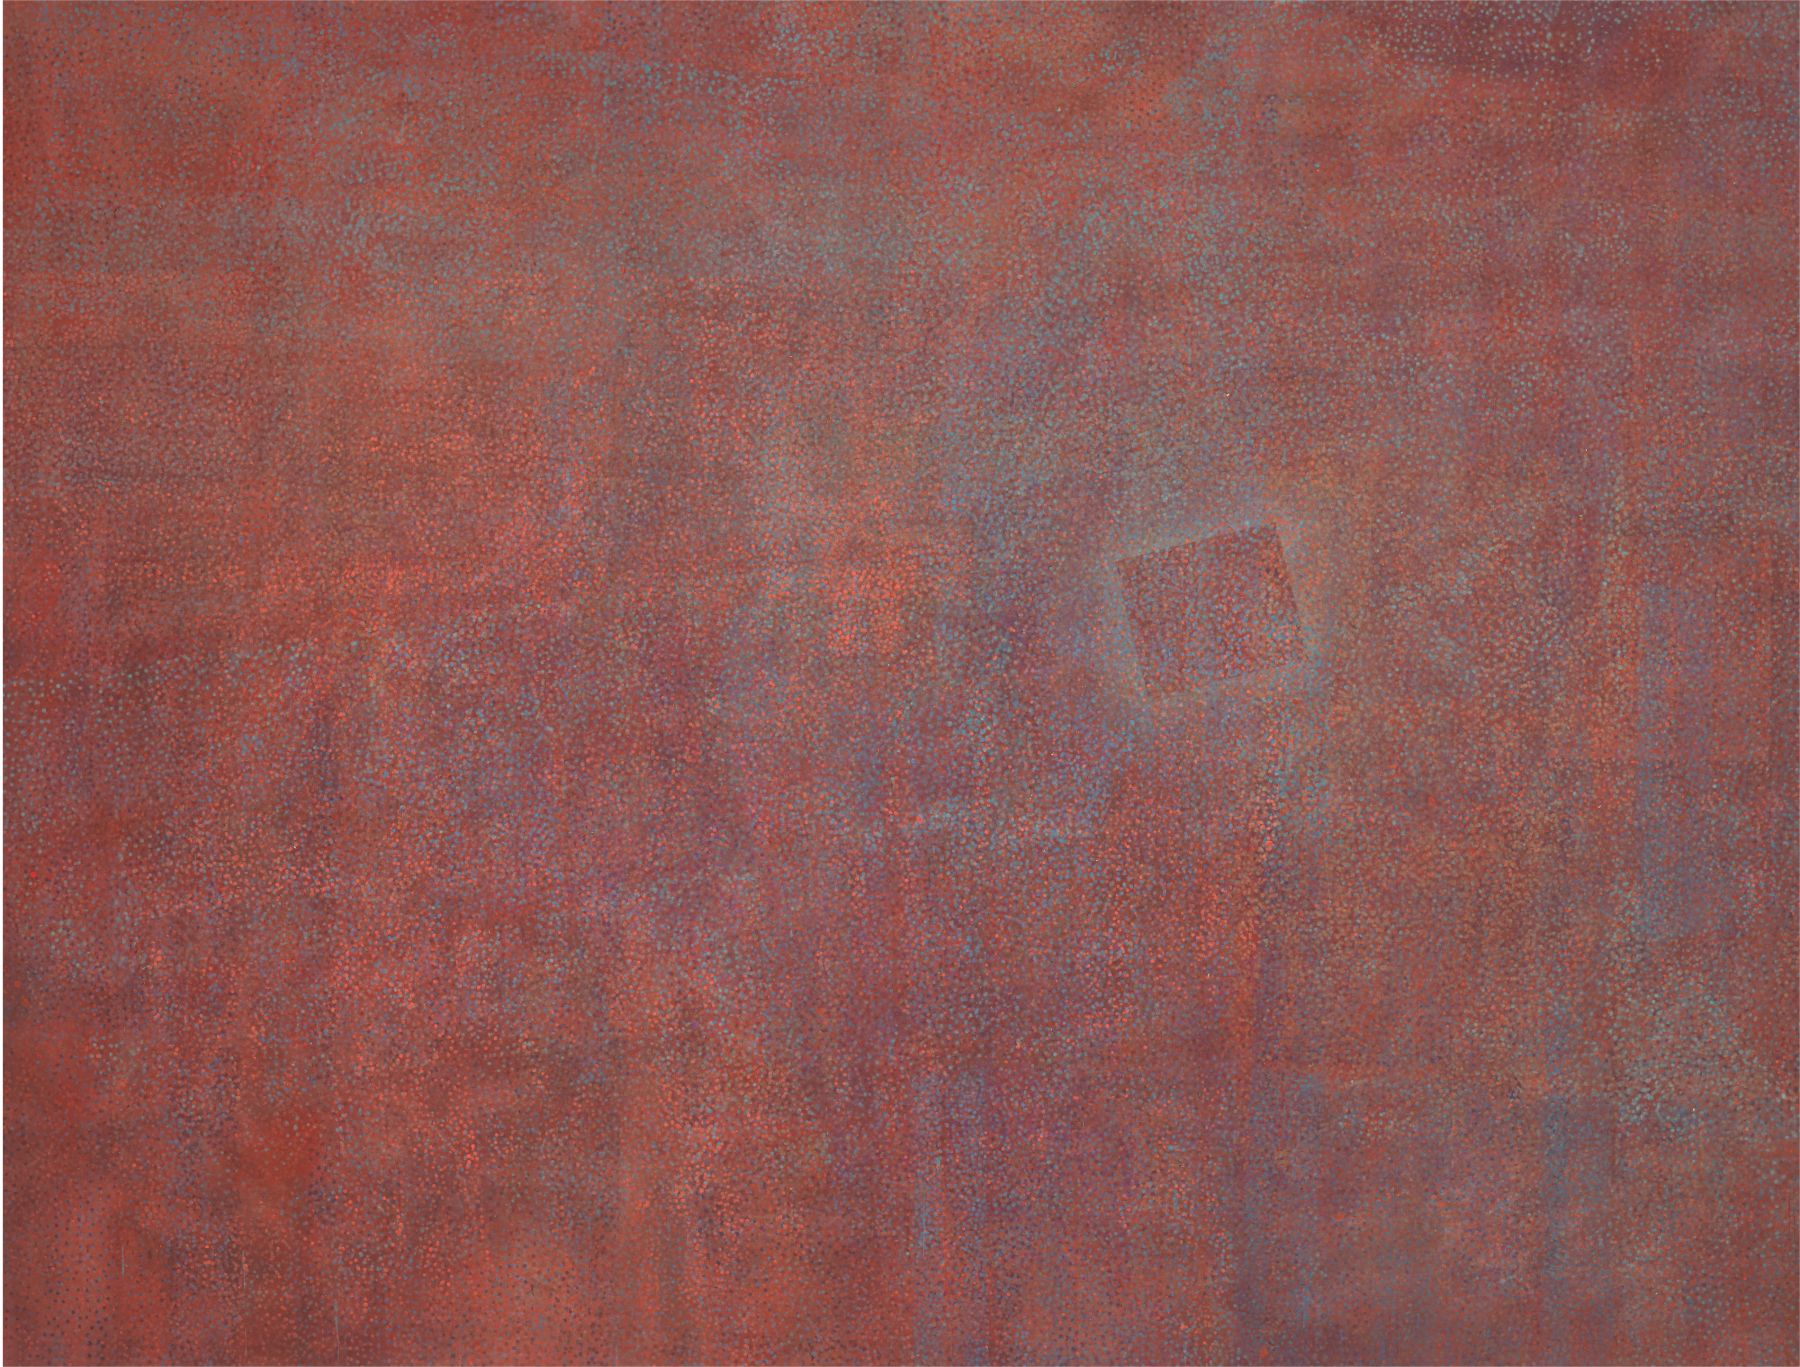 Untitled, 1972, Acrylic on canvas